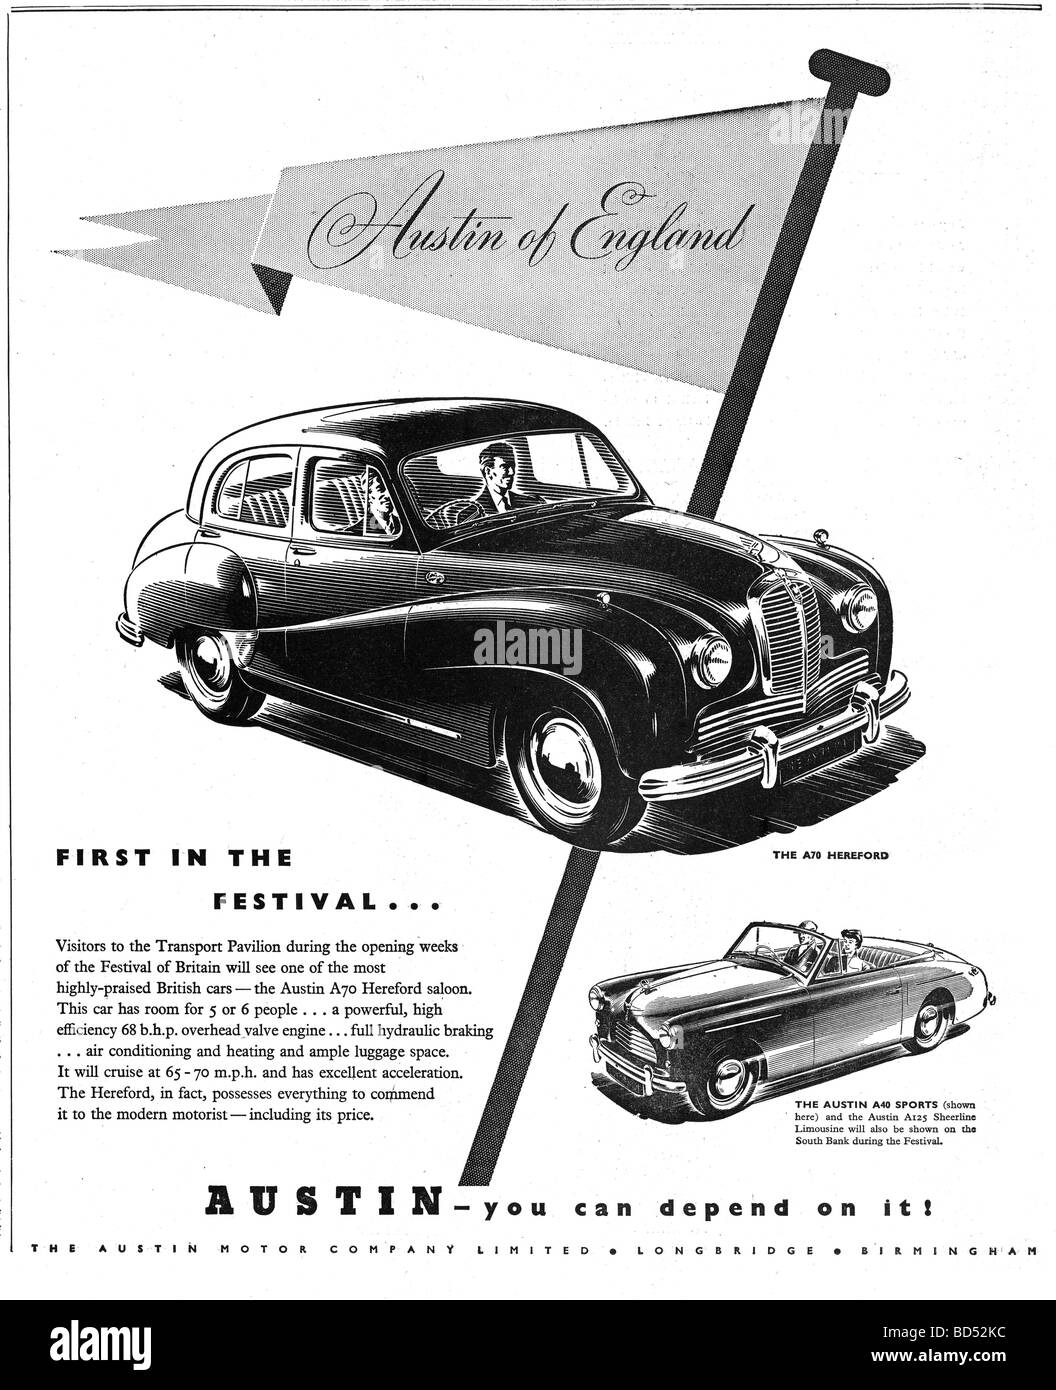 Austin car advert from 1951 - Stock Image